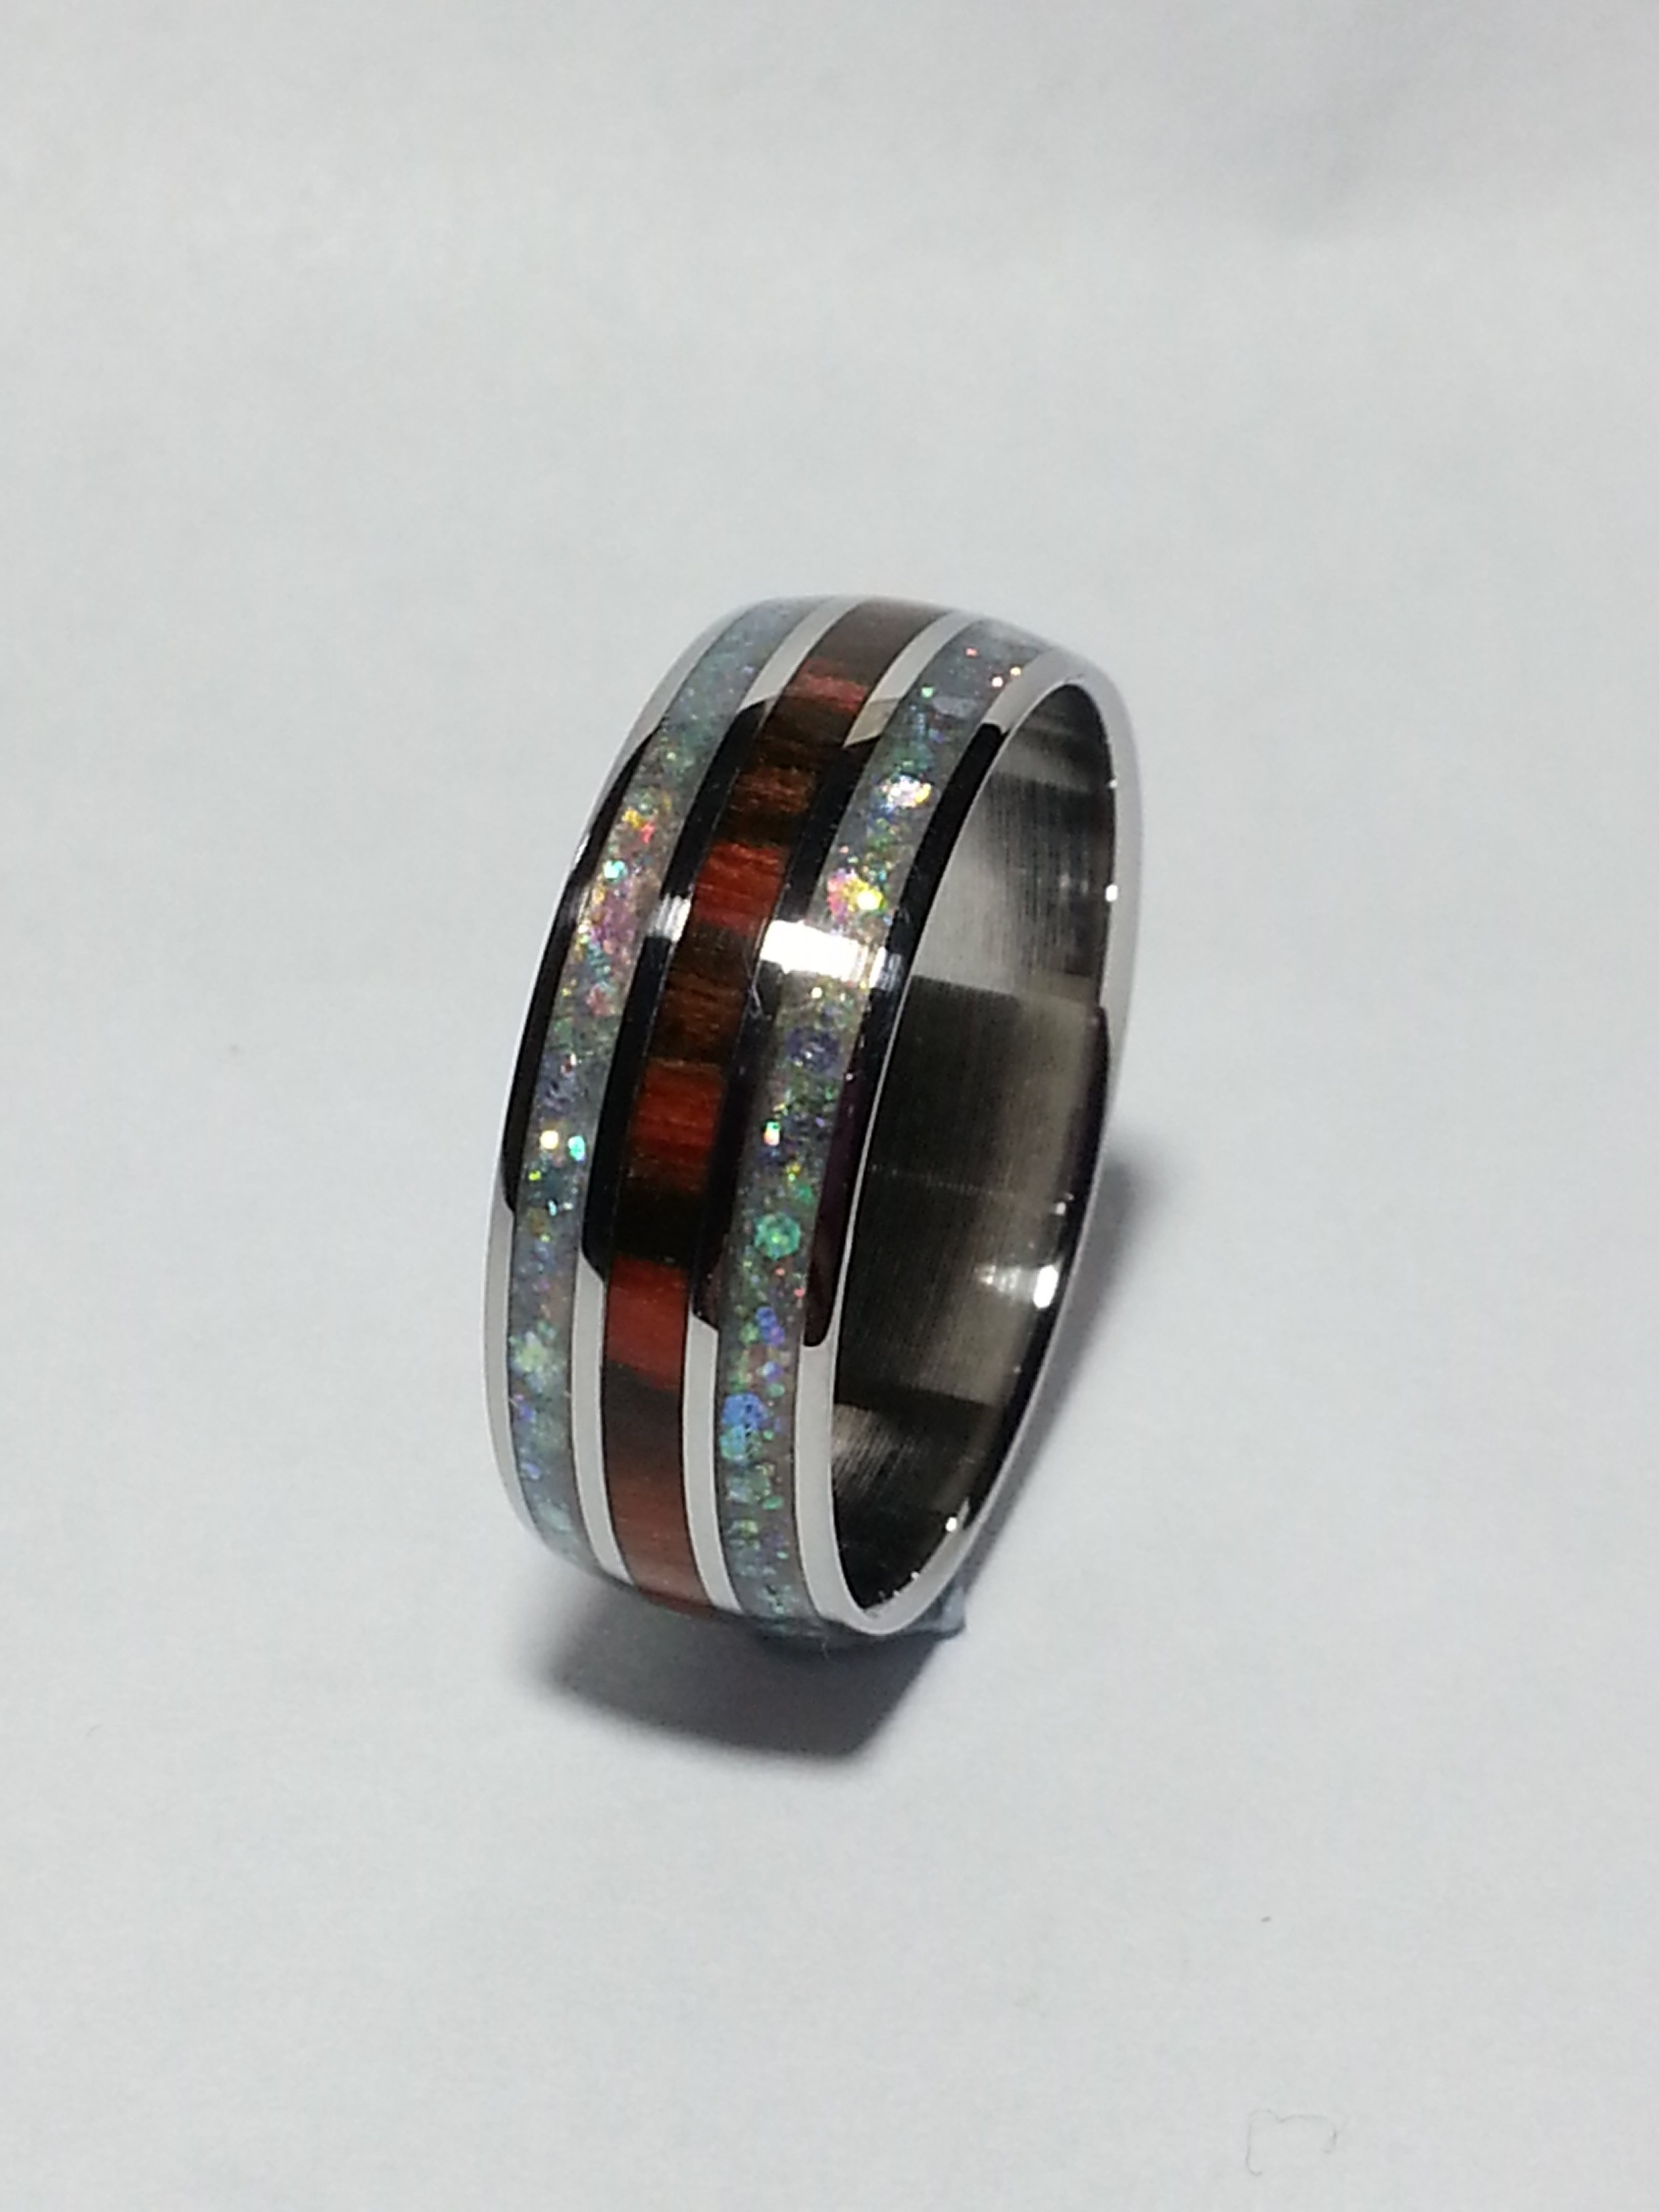 Stainless Steel Ring + Rosewood + Glitter